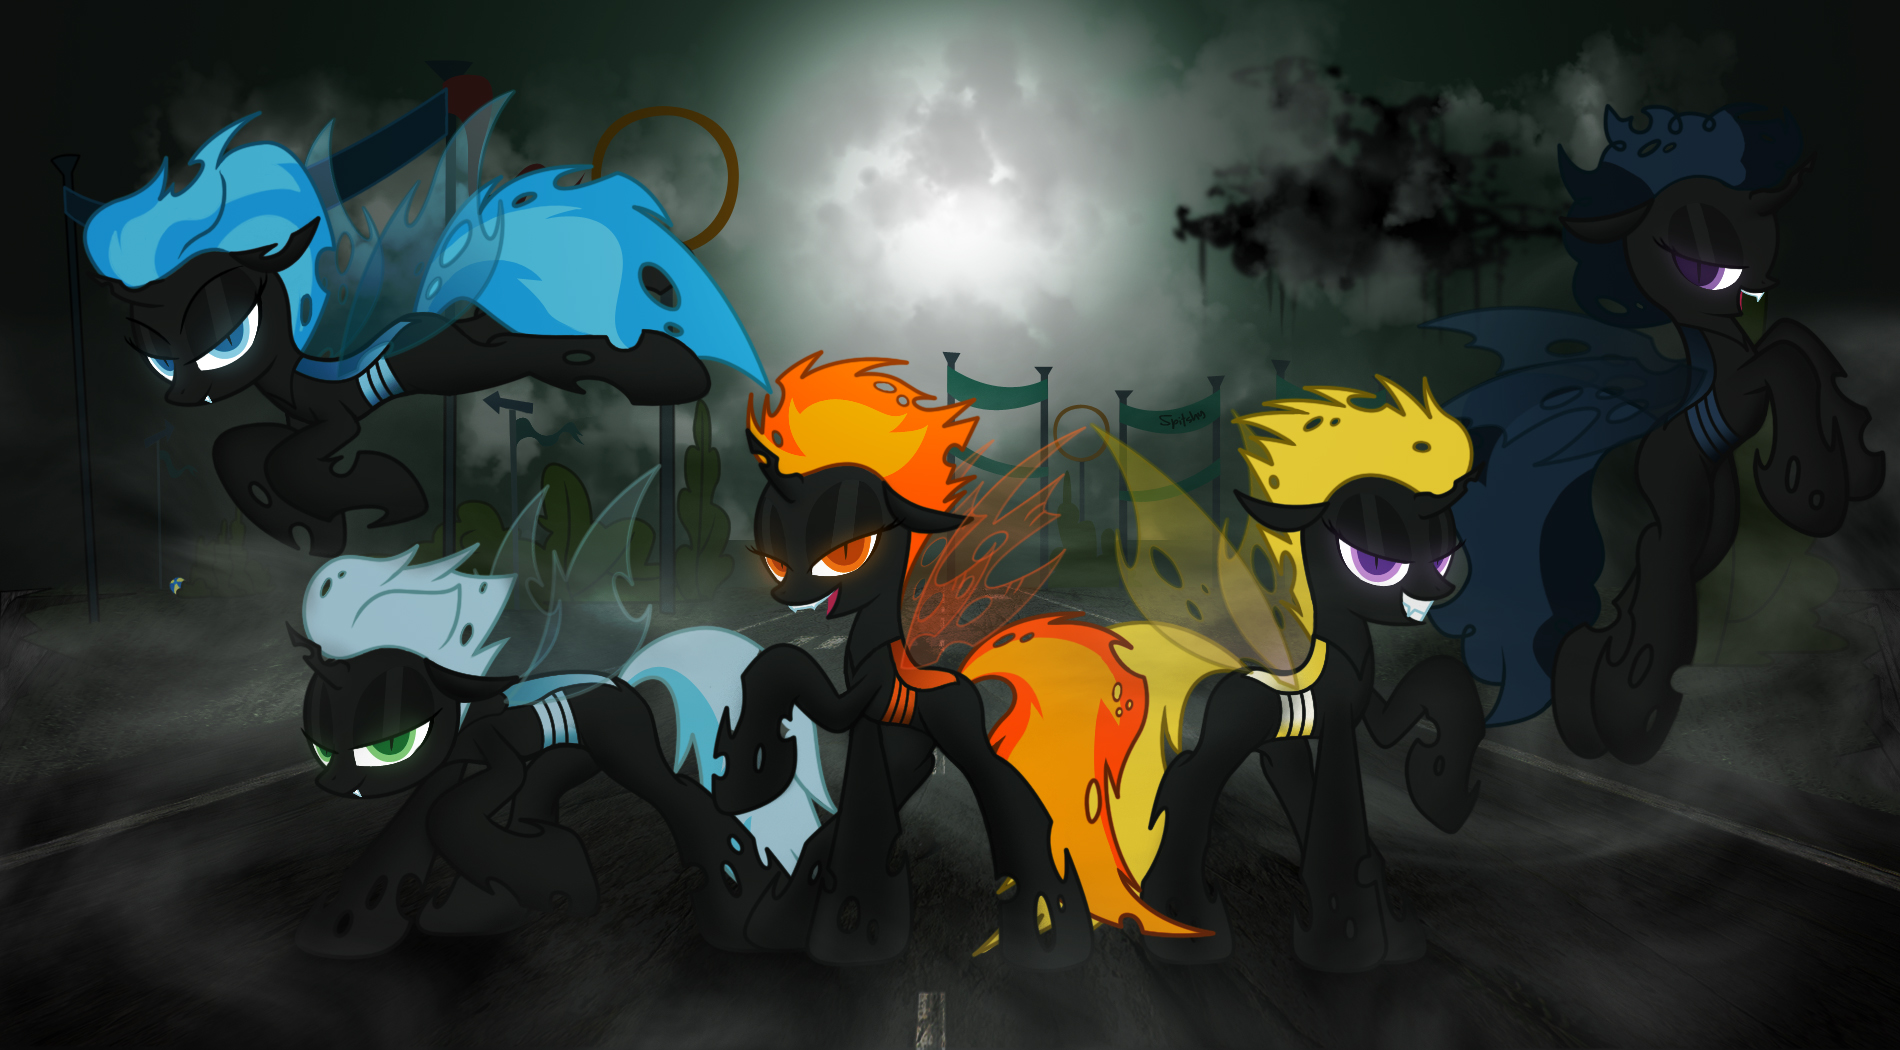 changeling_wonderbolts_by_spitshy-d66m79